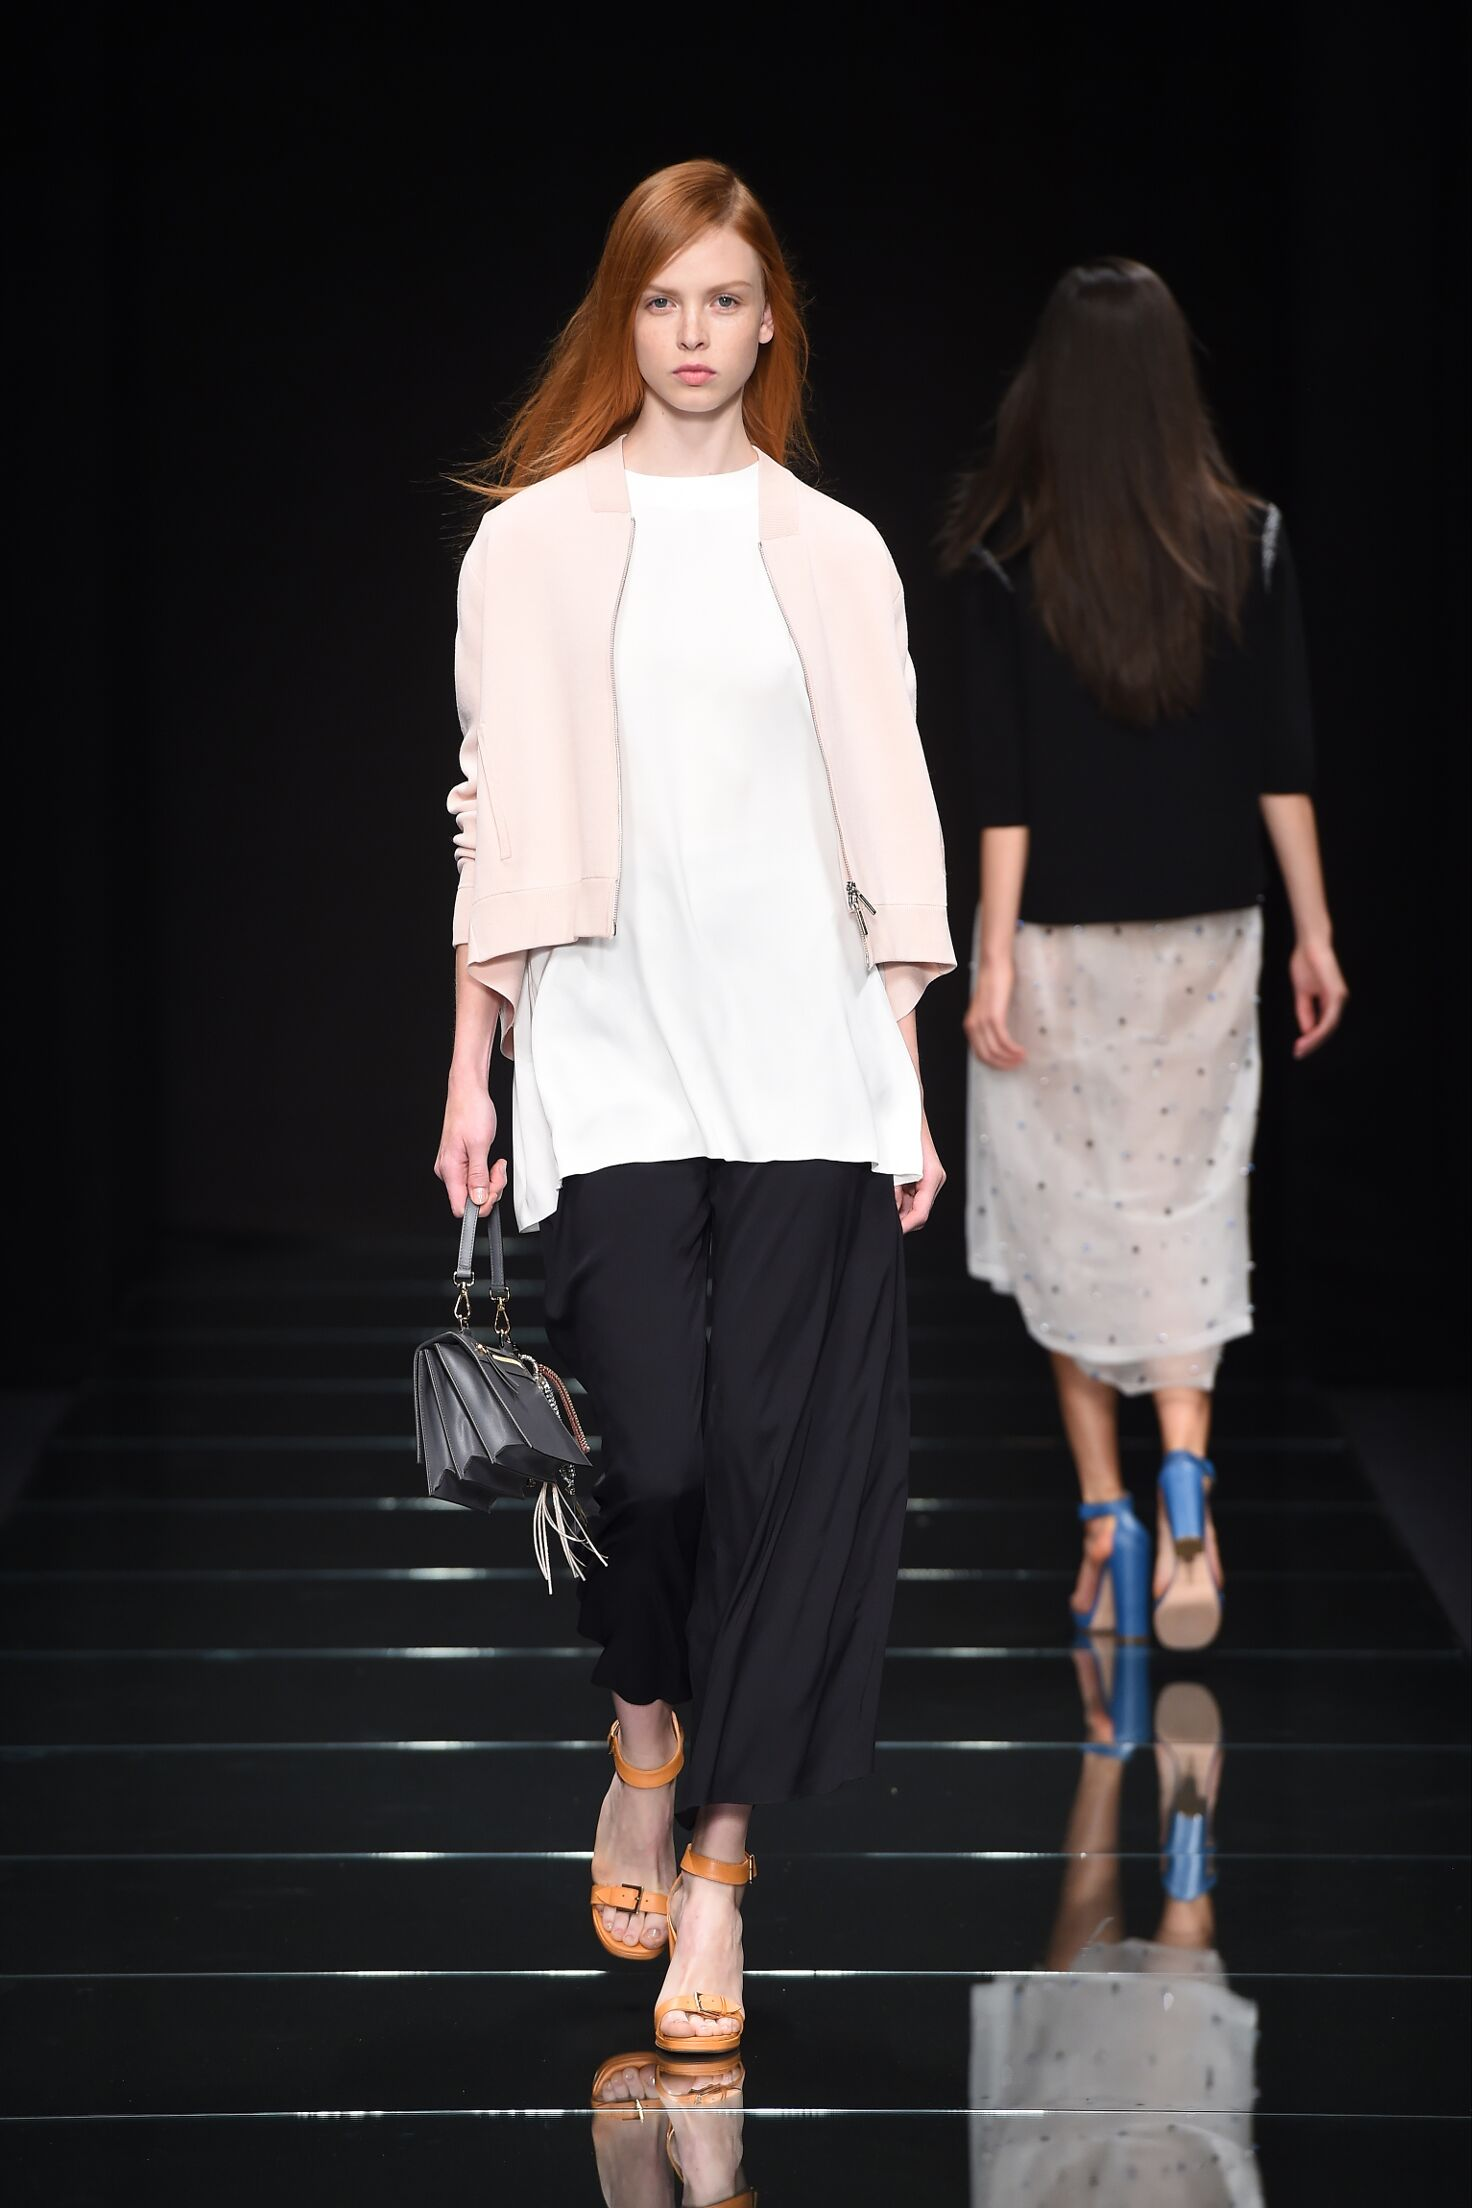 Anteprima Milan Fashion Week Womenswear